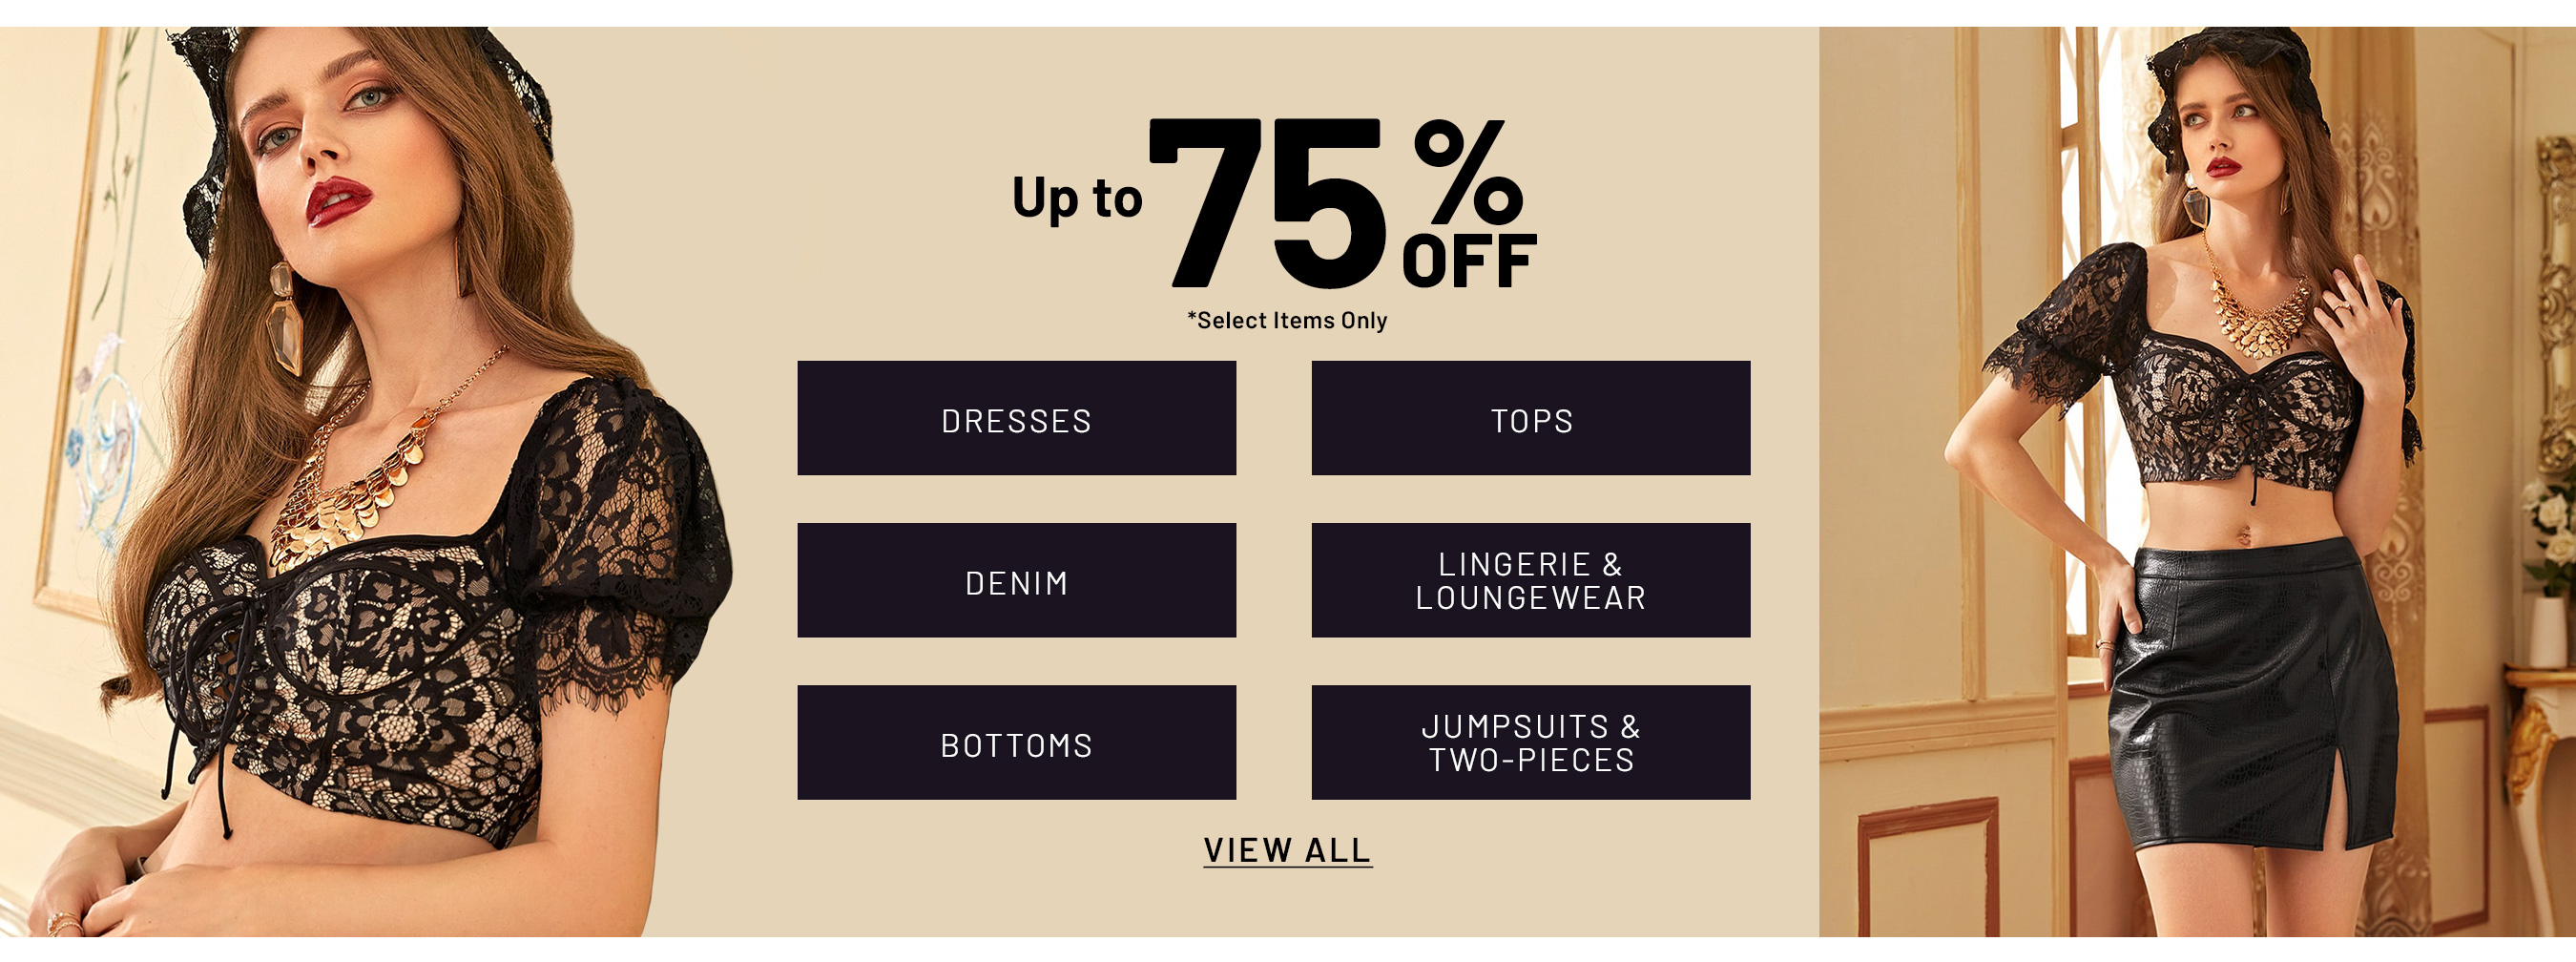 Shein Coupons - Up to 75% Off on Women's Apparels